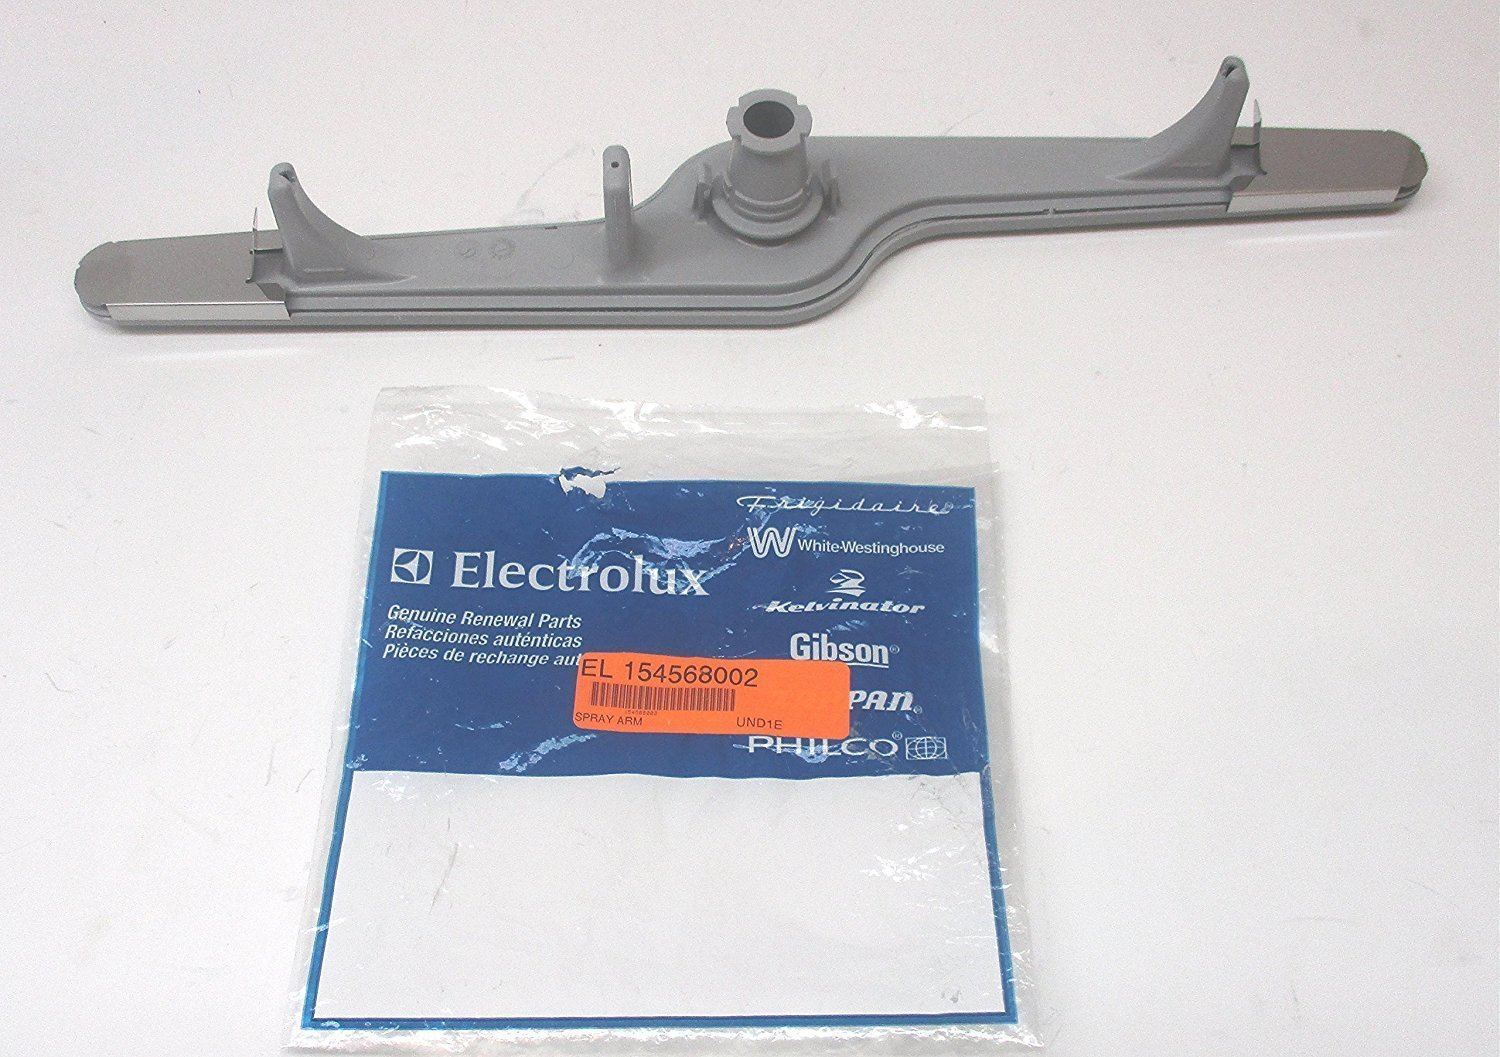 Electrolux Part Number 154568002: Spray Arm Gray